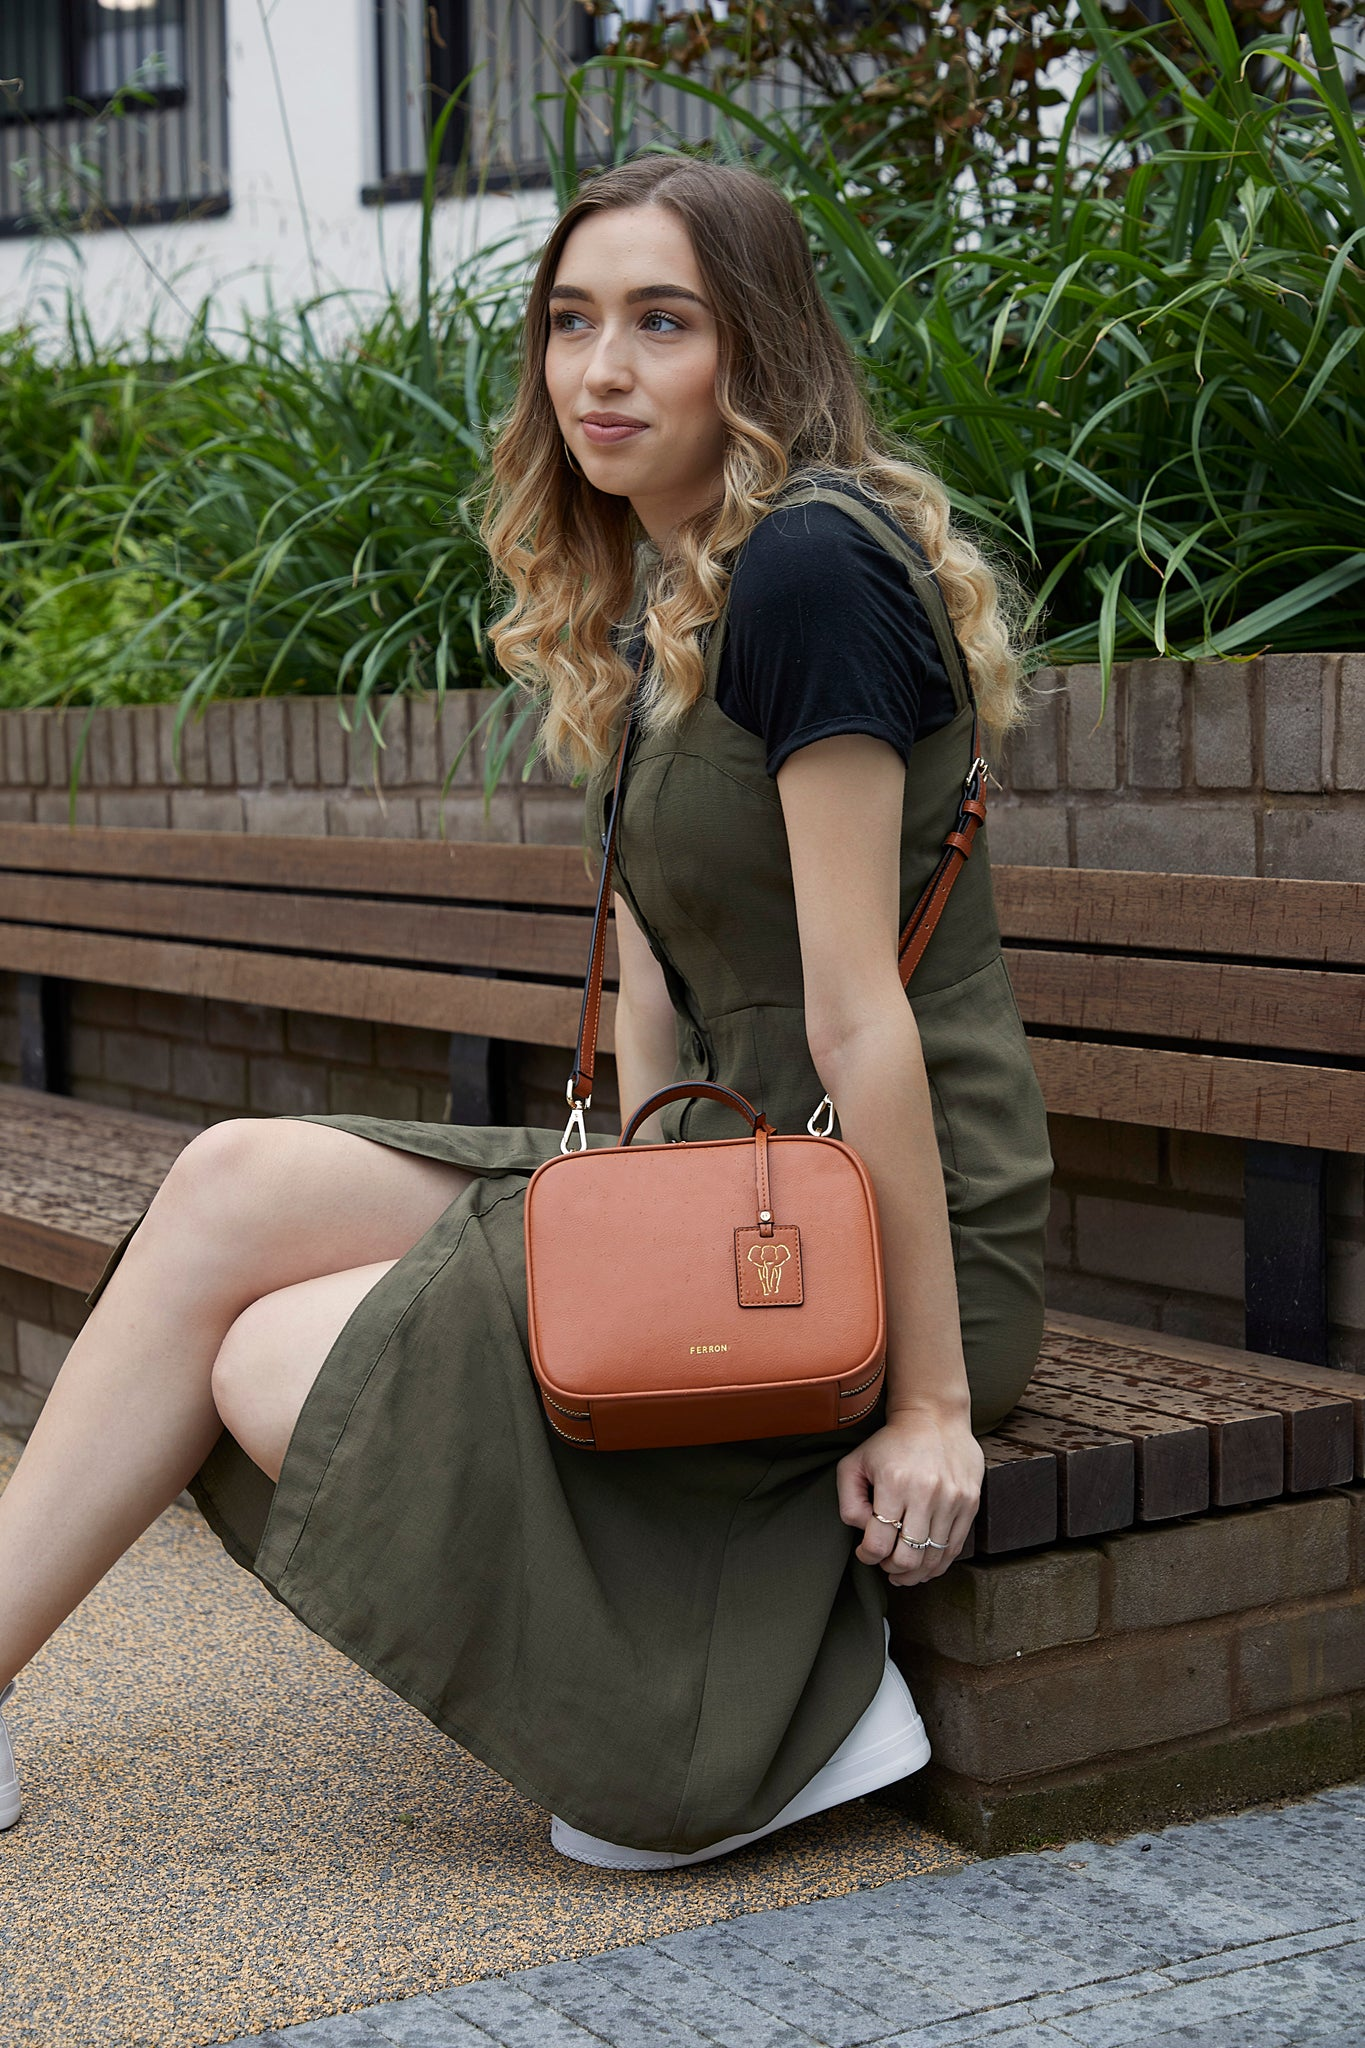 Model sitting wearing FERRON Vegan Signature Crossbody bag in tan with adjustable and detachable straps